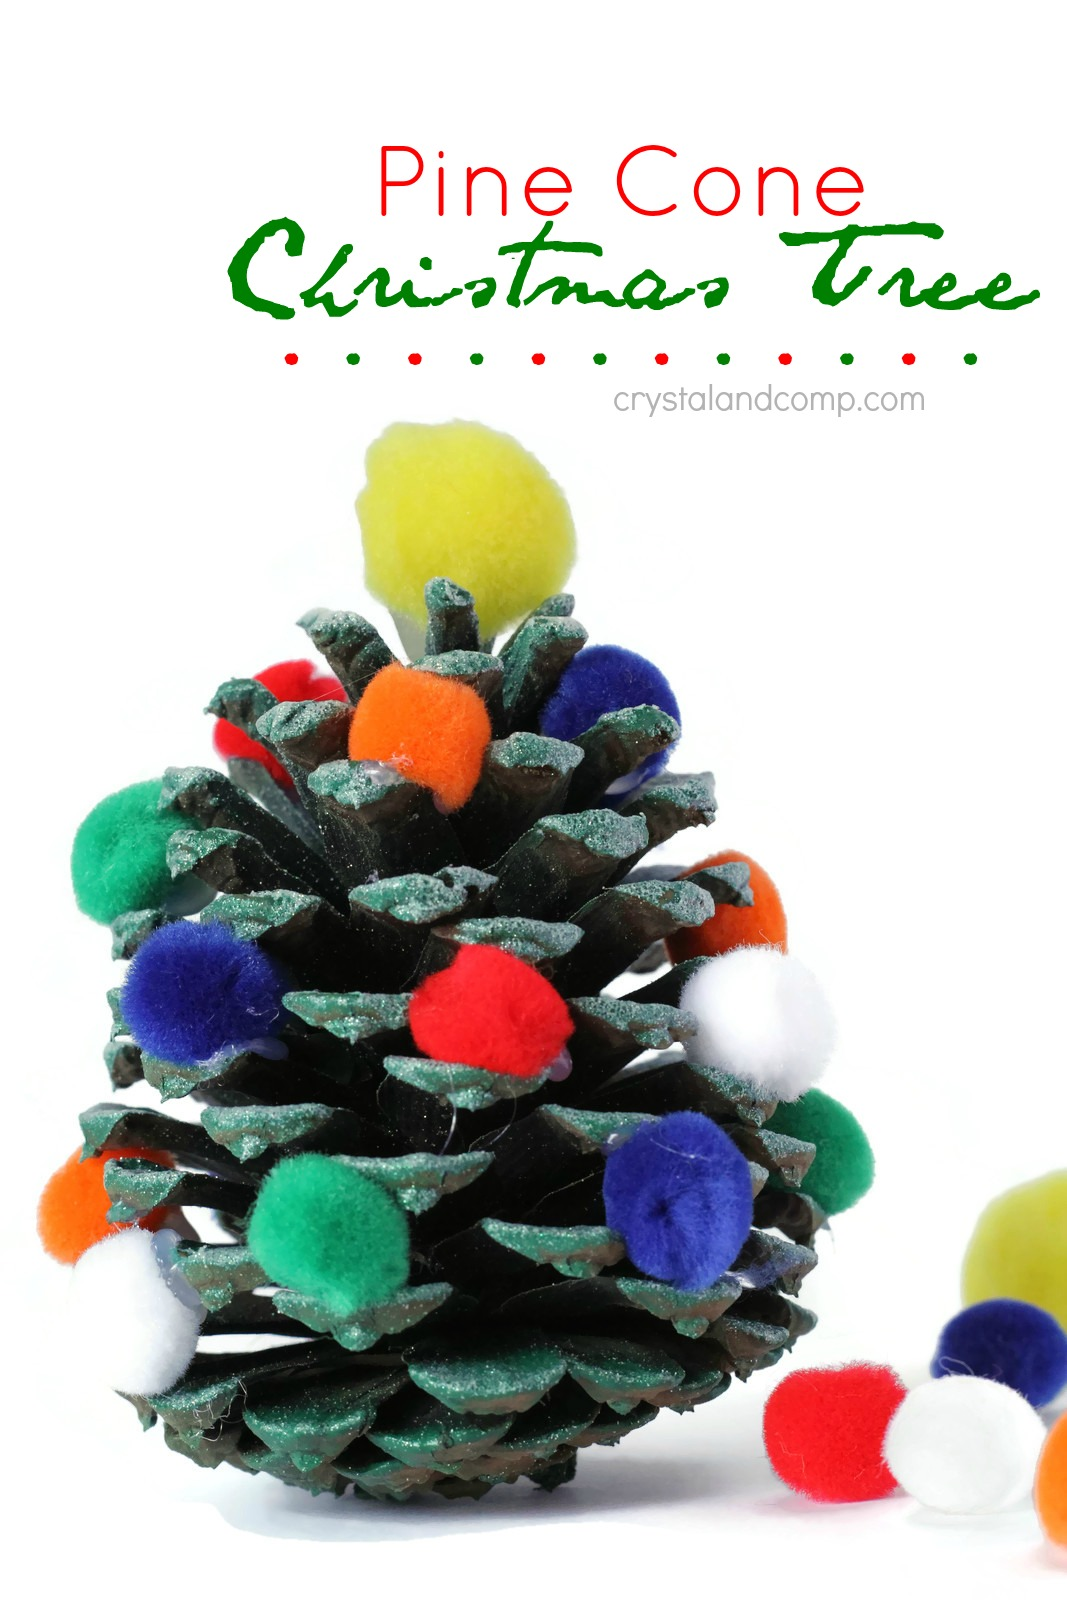 Pine Cone Christmas Ornaments To Make.Pine Cone Christmas Tree